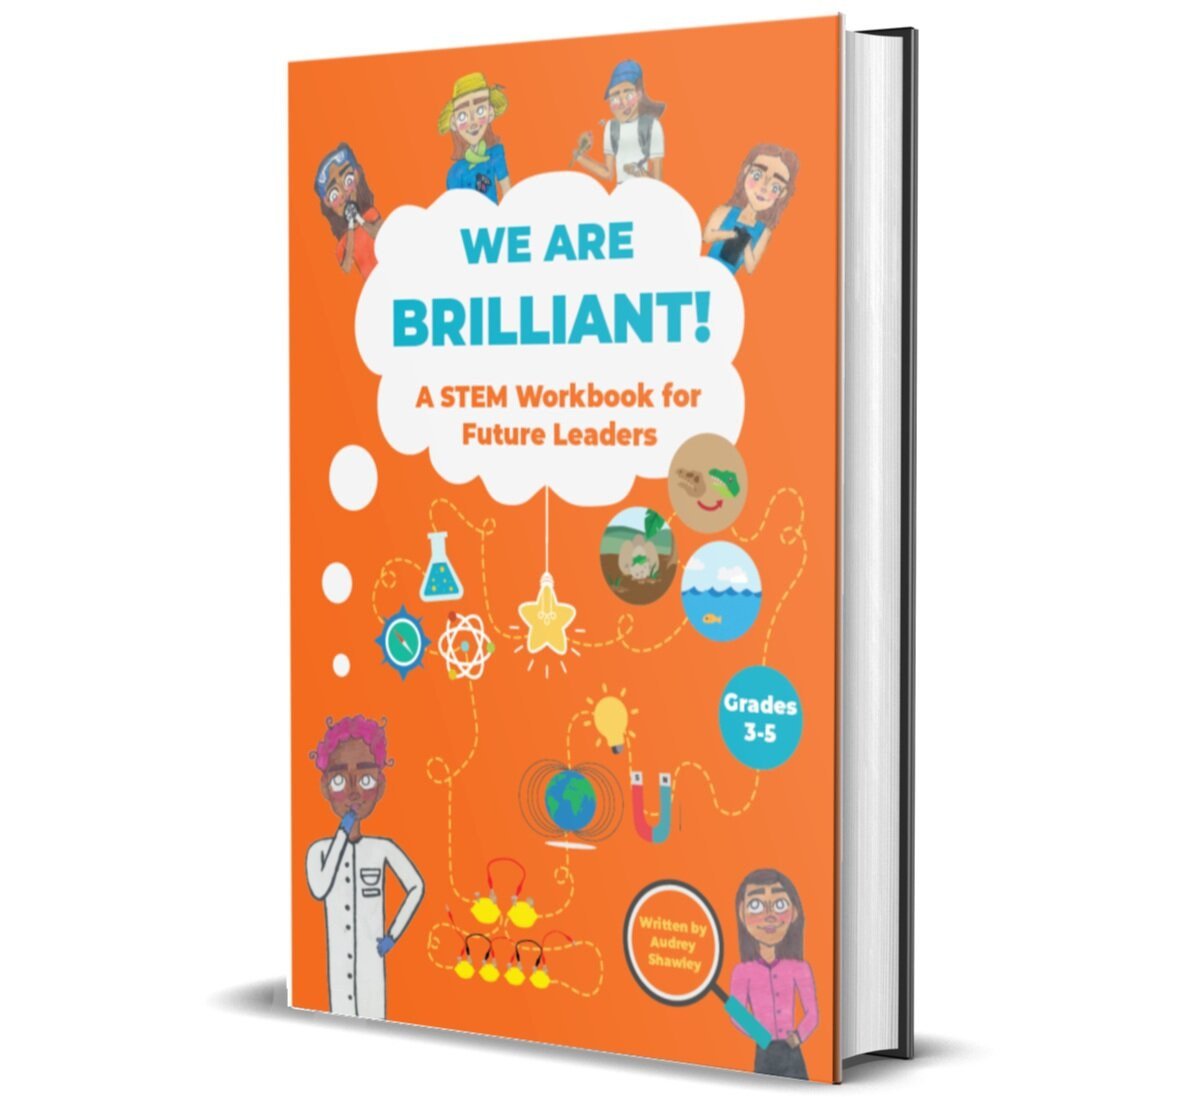 We Are Brilliant! A STEM Workbook for Future Leaders  has been written by co-founder Audrey Shawley, and illustrated by a dynamic team of six Boundless Brilliance alumni. This 64-page workbook is intended to be given to 3rd-5th grade students who receive Boundless Brilliance presentations free of charge. The purpose of this book is to generate a platform for continued learning following a Boundless Brilliance classroom presentation, and expose students who cannot participate in our workshops to our unique empowerment model.  Book release: December 2019    DONATION LEVELS AND BENEFITS  $25: 1 book sent to you    $40: Buy one give one! 1 book sent to you, and 1 book sent to a Title 1 elementary school student   $100: Buy one give three! 1 book sent to you, and 3 books sent to Title 1 elementary school students    $250: Buy one give ten! 1 book sent to you, and 10 books sent to Title 1 elementary school students   $500: Fund a classroom! 1 book sent to you, and books sent to an entire classroom of Title 1 elementary school students    Prefer only to give and not get? Want to purchase more books than specified above? Email us at    info@boundlessbrilliance.org    to explore additional options.  To receive your personal book and specify number of books you would like to donate (if applicable), email    info@boundlessbrilliance.org    after your donation is processed and include your name and mailing address. In alignment with GoFundMe privacy policy, without this email, your benefits cannot be distributed.